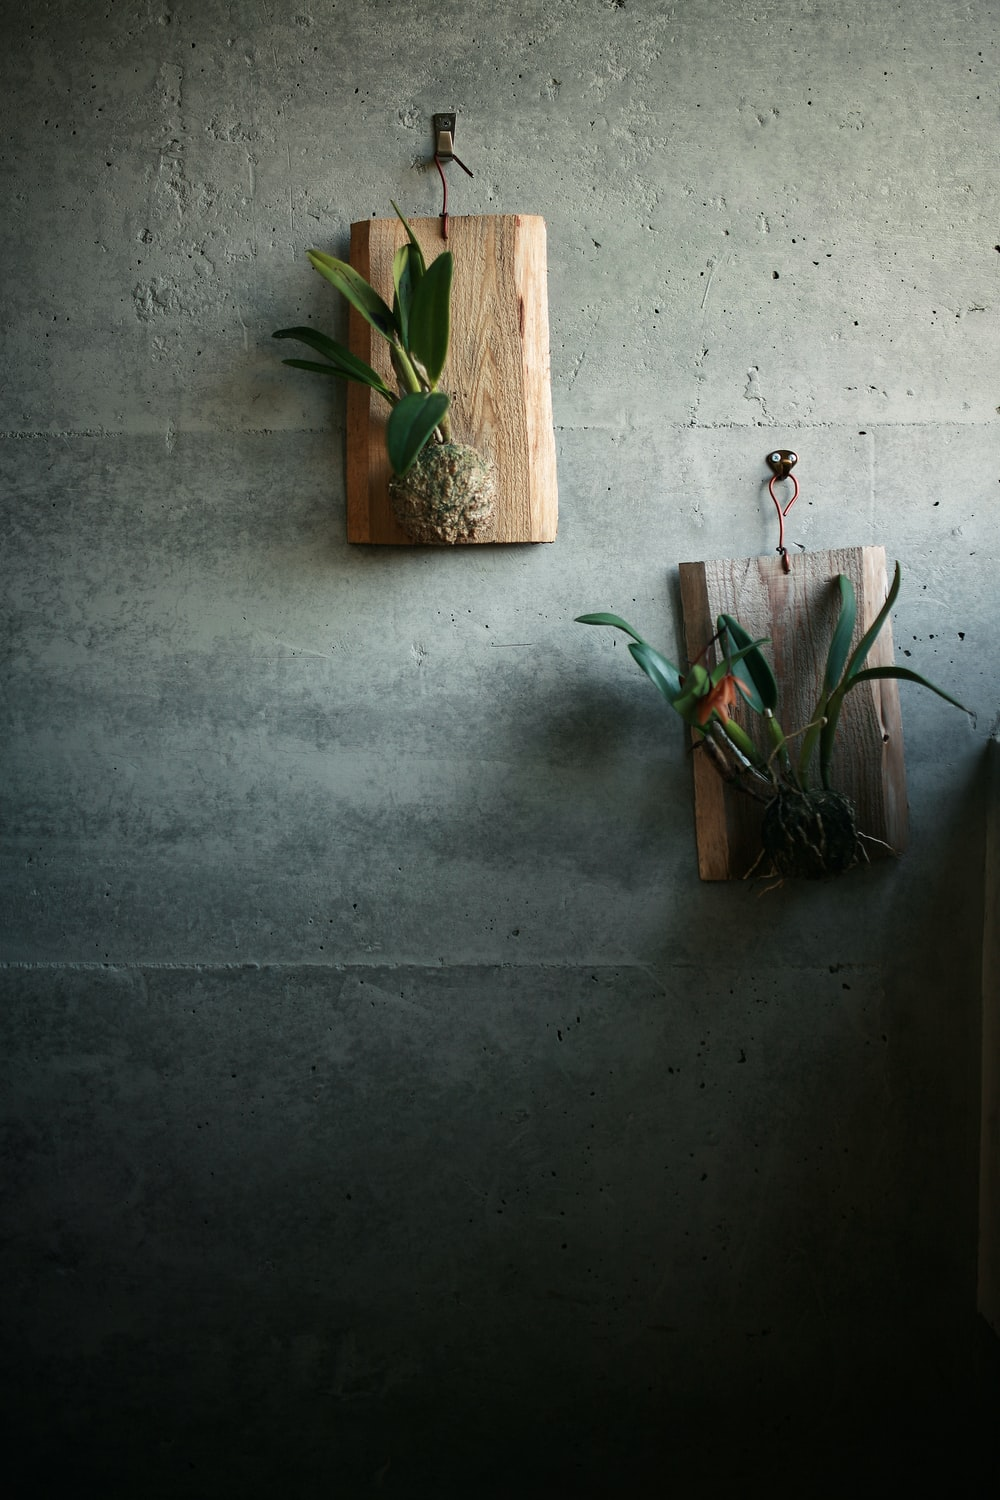 green cactus plant on brown wooden pot